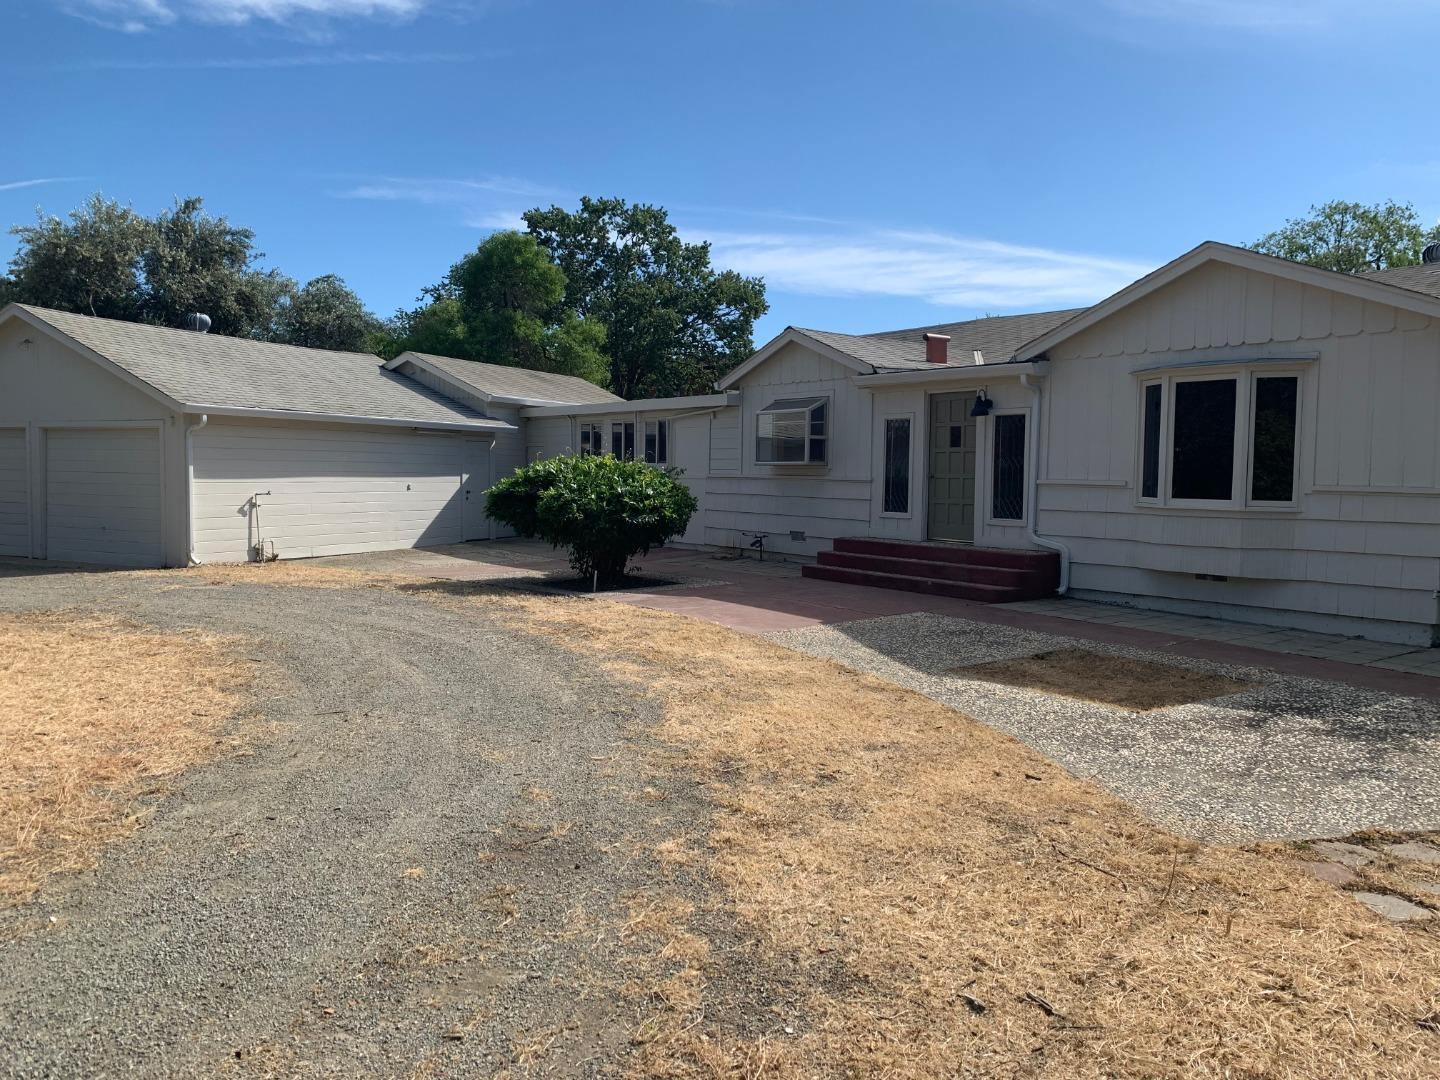 1394 MUNRO AVE, CAMPBELL, CA 95008